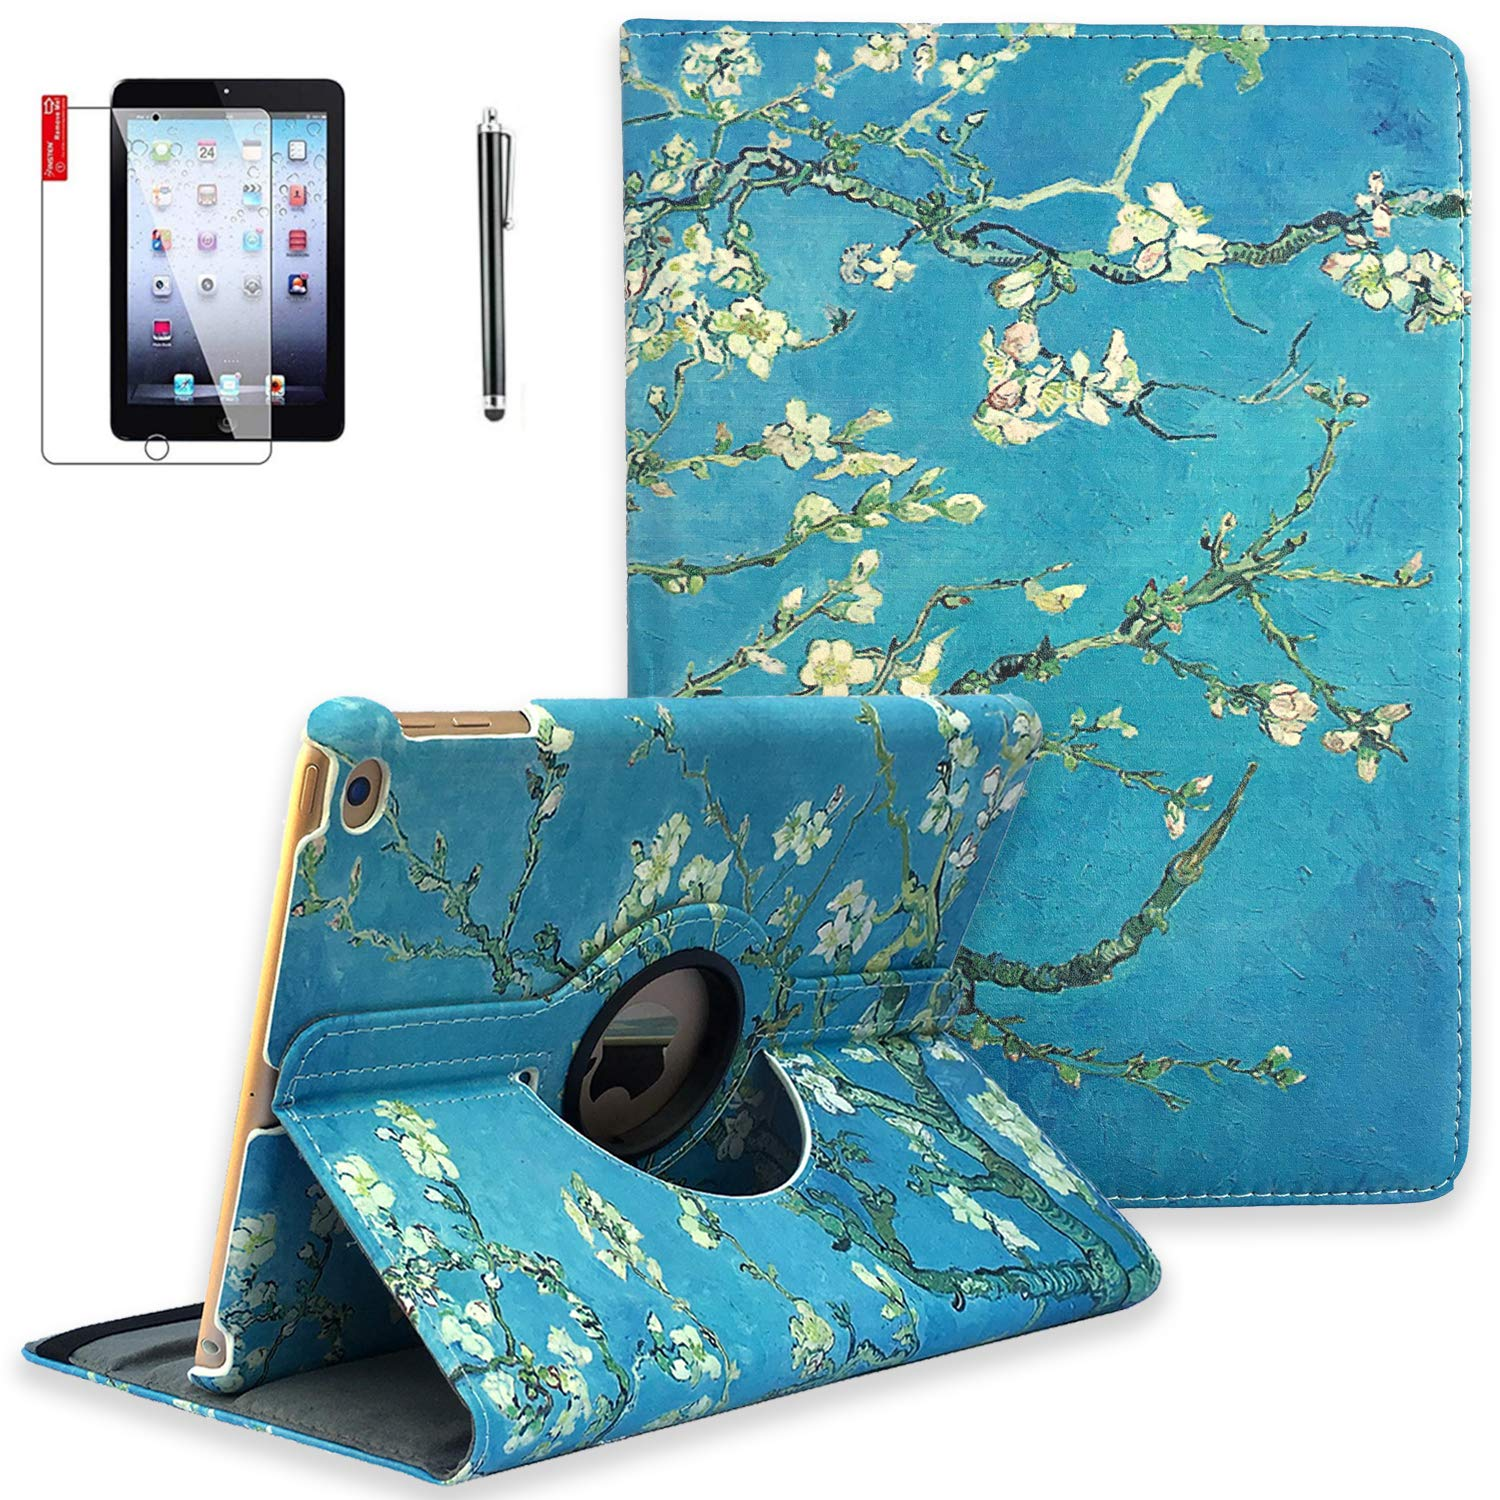 NEWQIANG iPad 9.7 inch 2018 2017 Air1 Case with Screen Protector - iPad 5th 6th Generation Case - 360 Degree Rotating Stand, Auto Sleep Wake, Shockproof - A1822 A1823 A1474 A1475 (Pear Flower)